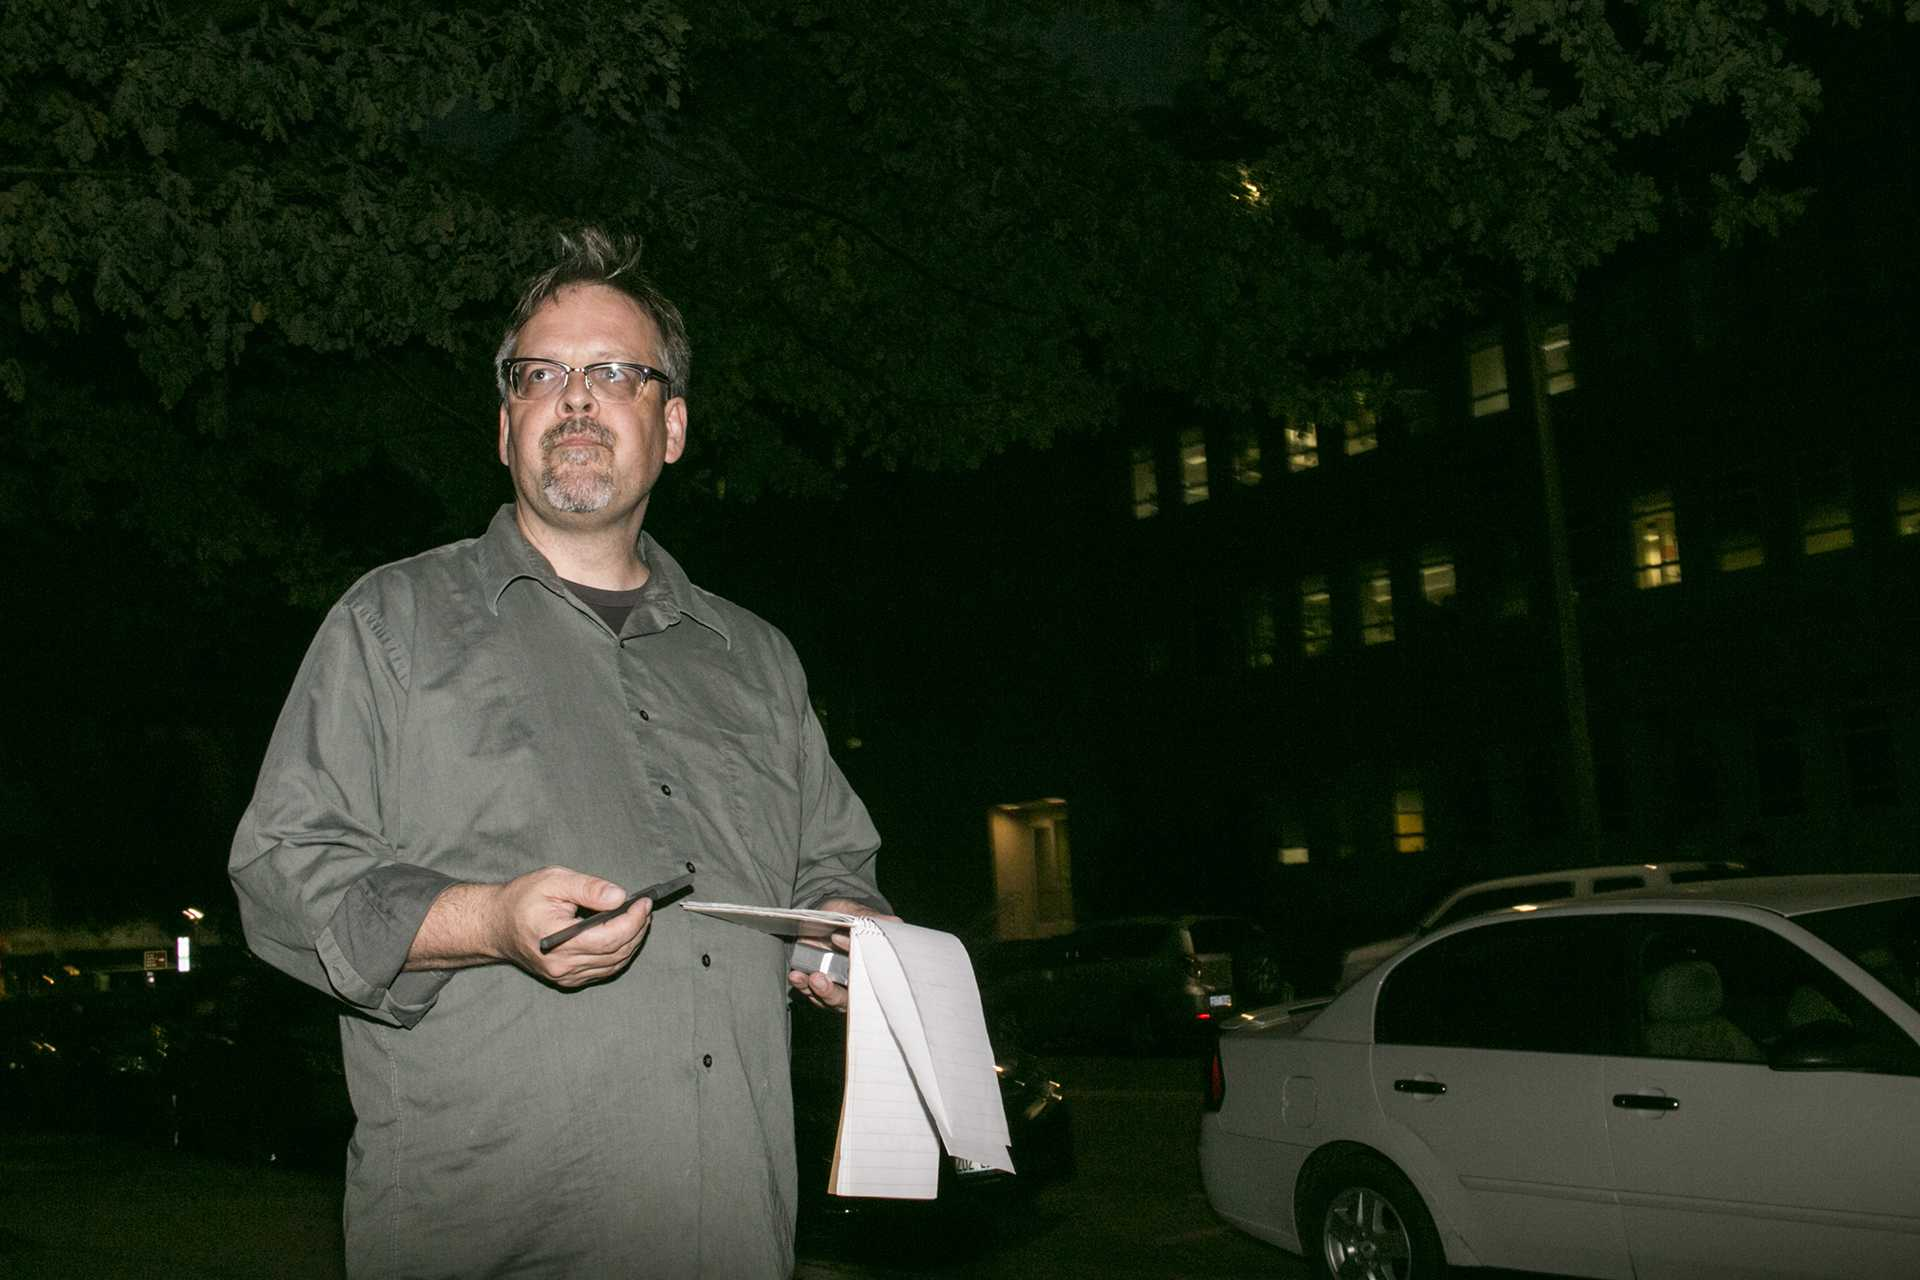 Loren Keller stands outside Van Allen Hall in the spot he stood as a DI reporter in 1991.